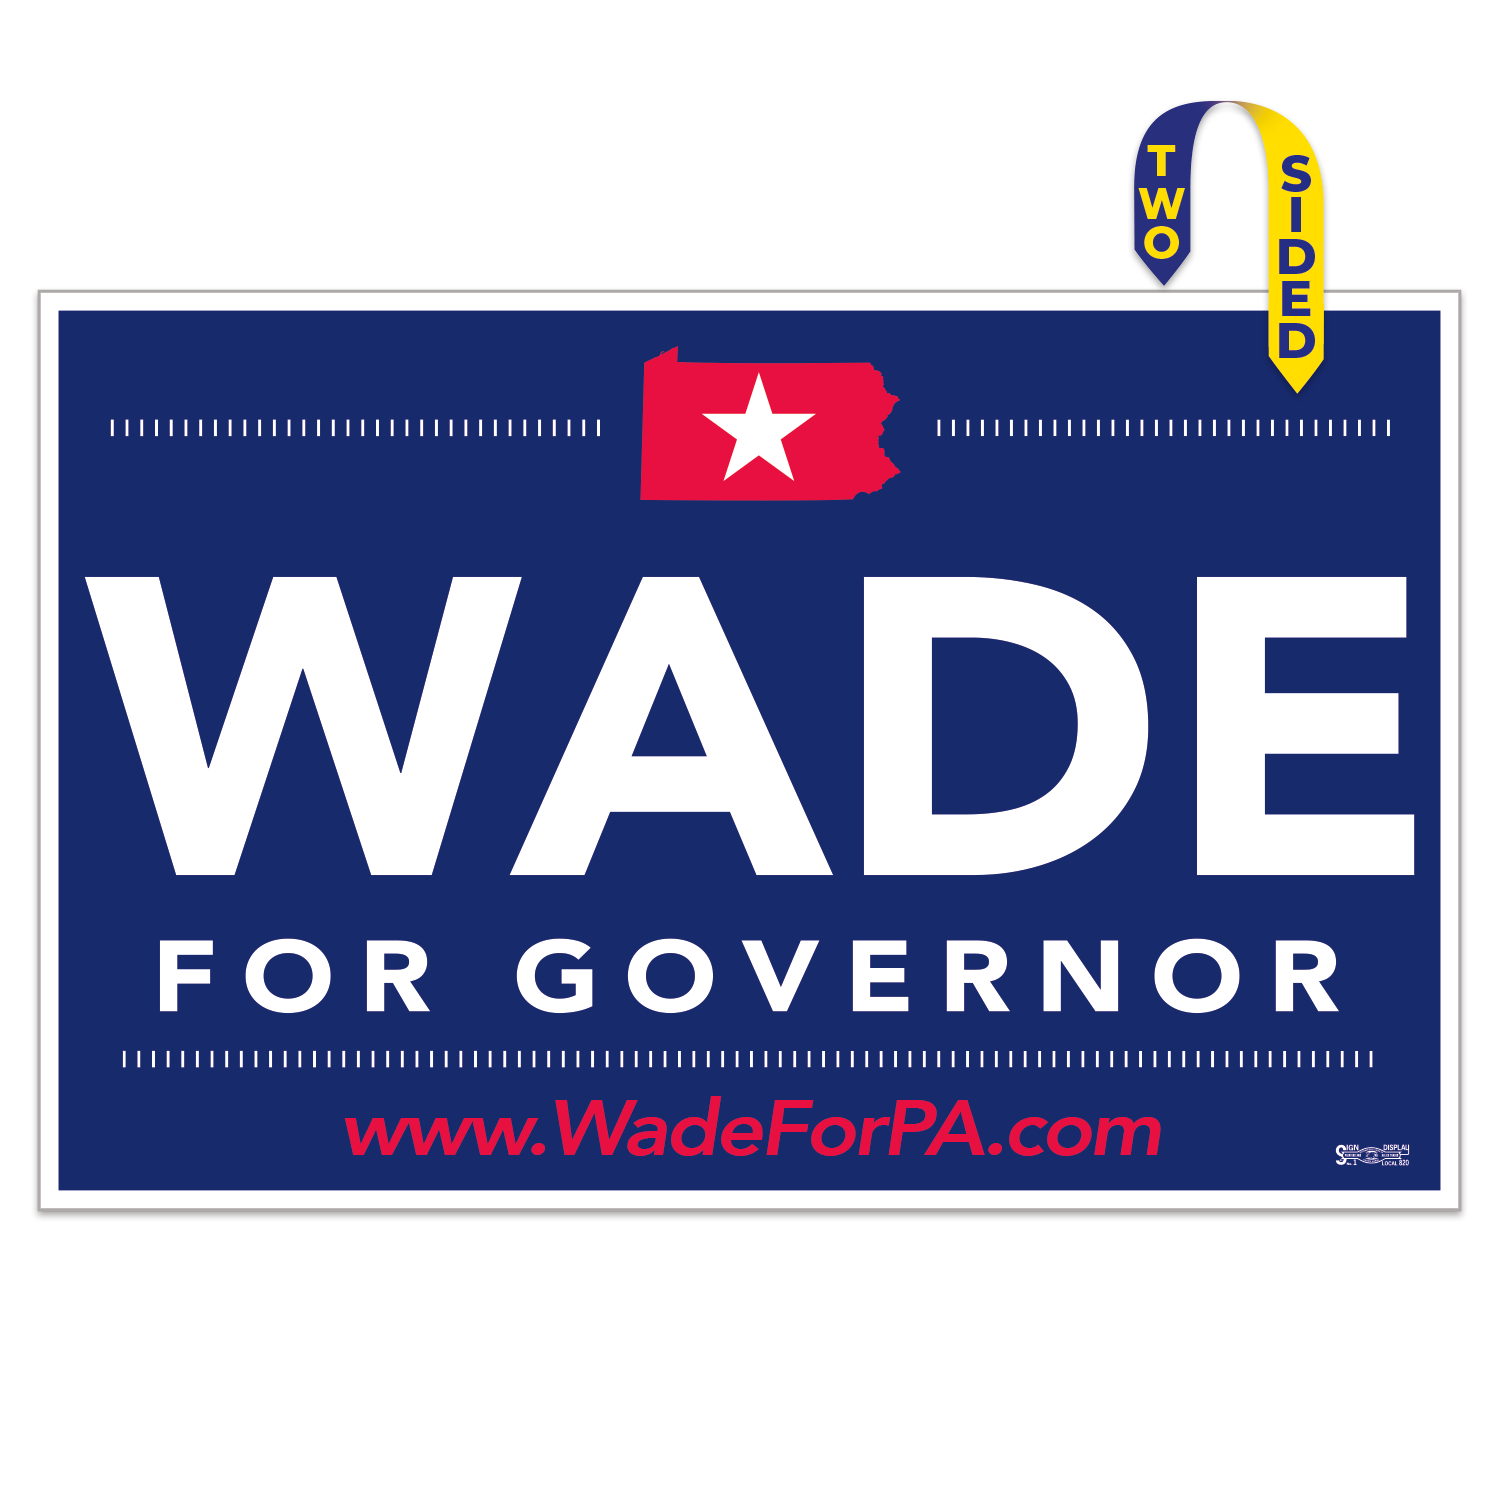 https://www.sswprinting.com/images/products_gallery_images/19611_Wade-for-Governor_hi-res64.png